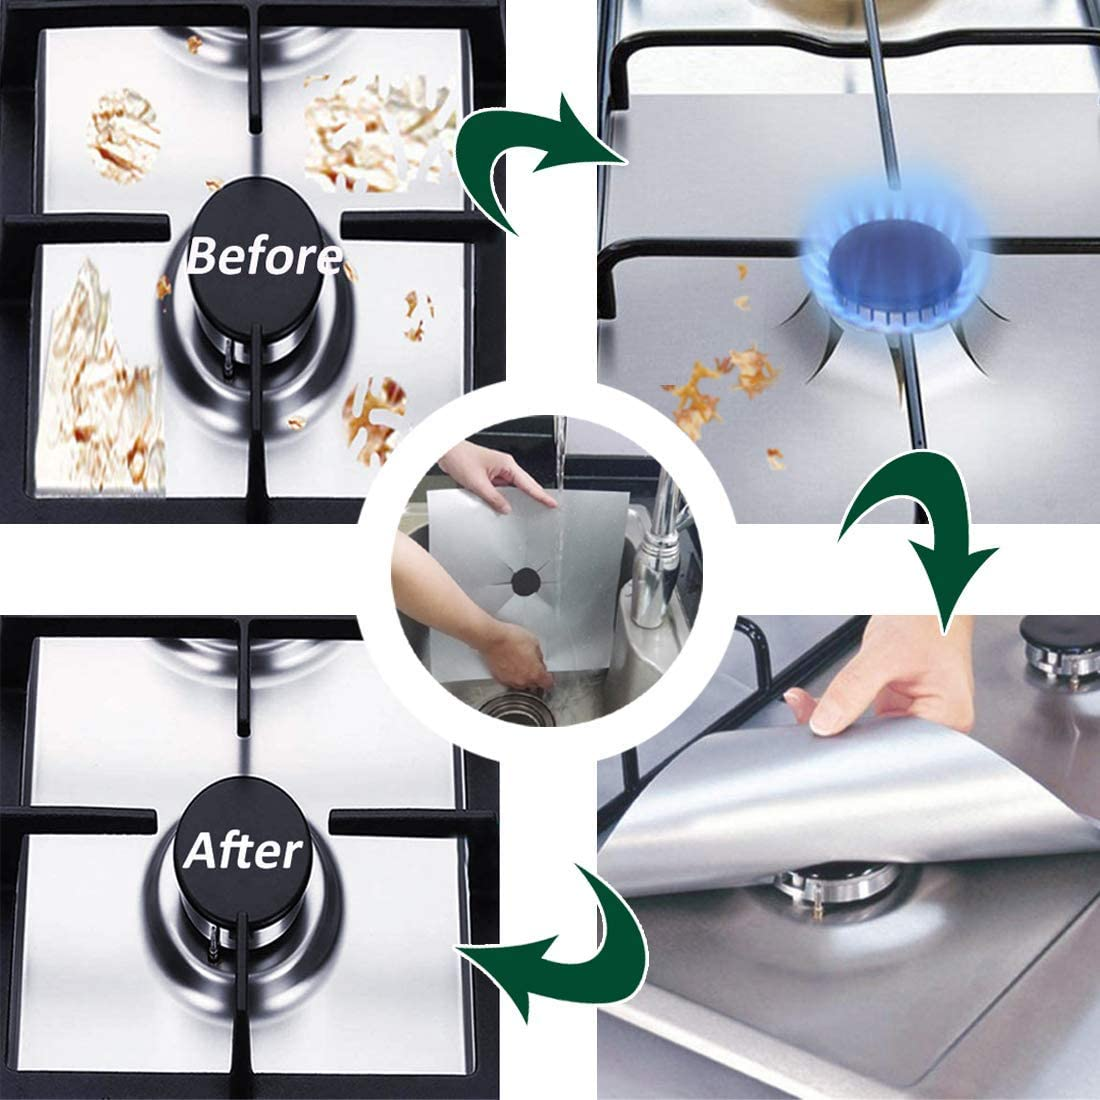 8 Pcs Xigeapg Stove Burner Covers Upgraded Double Thickness Silver Reusable Non-Stick Gas Stove Burner Liners Easy To Clean Heat Resistant